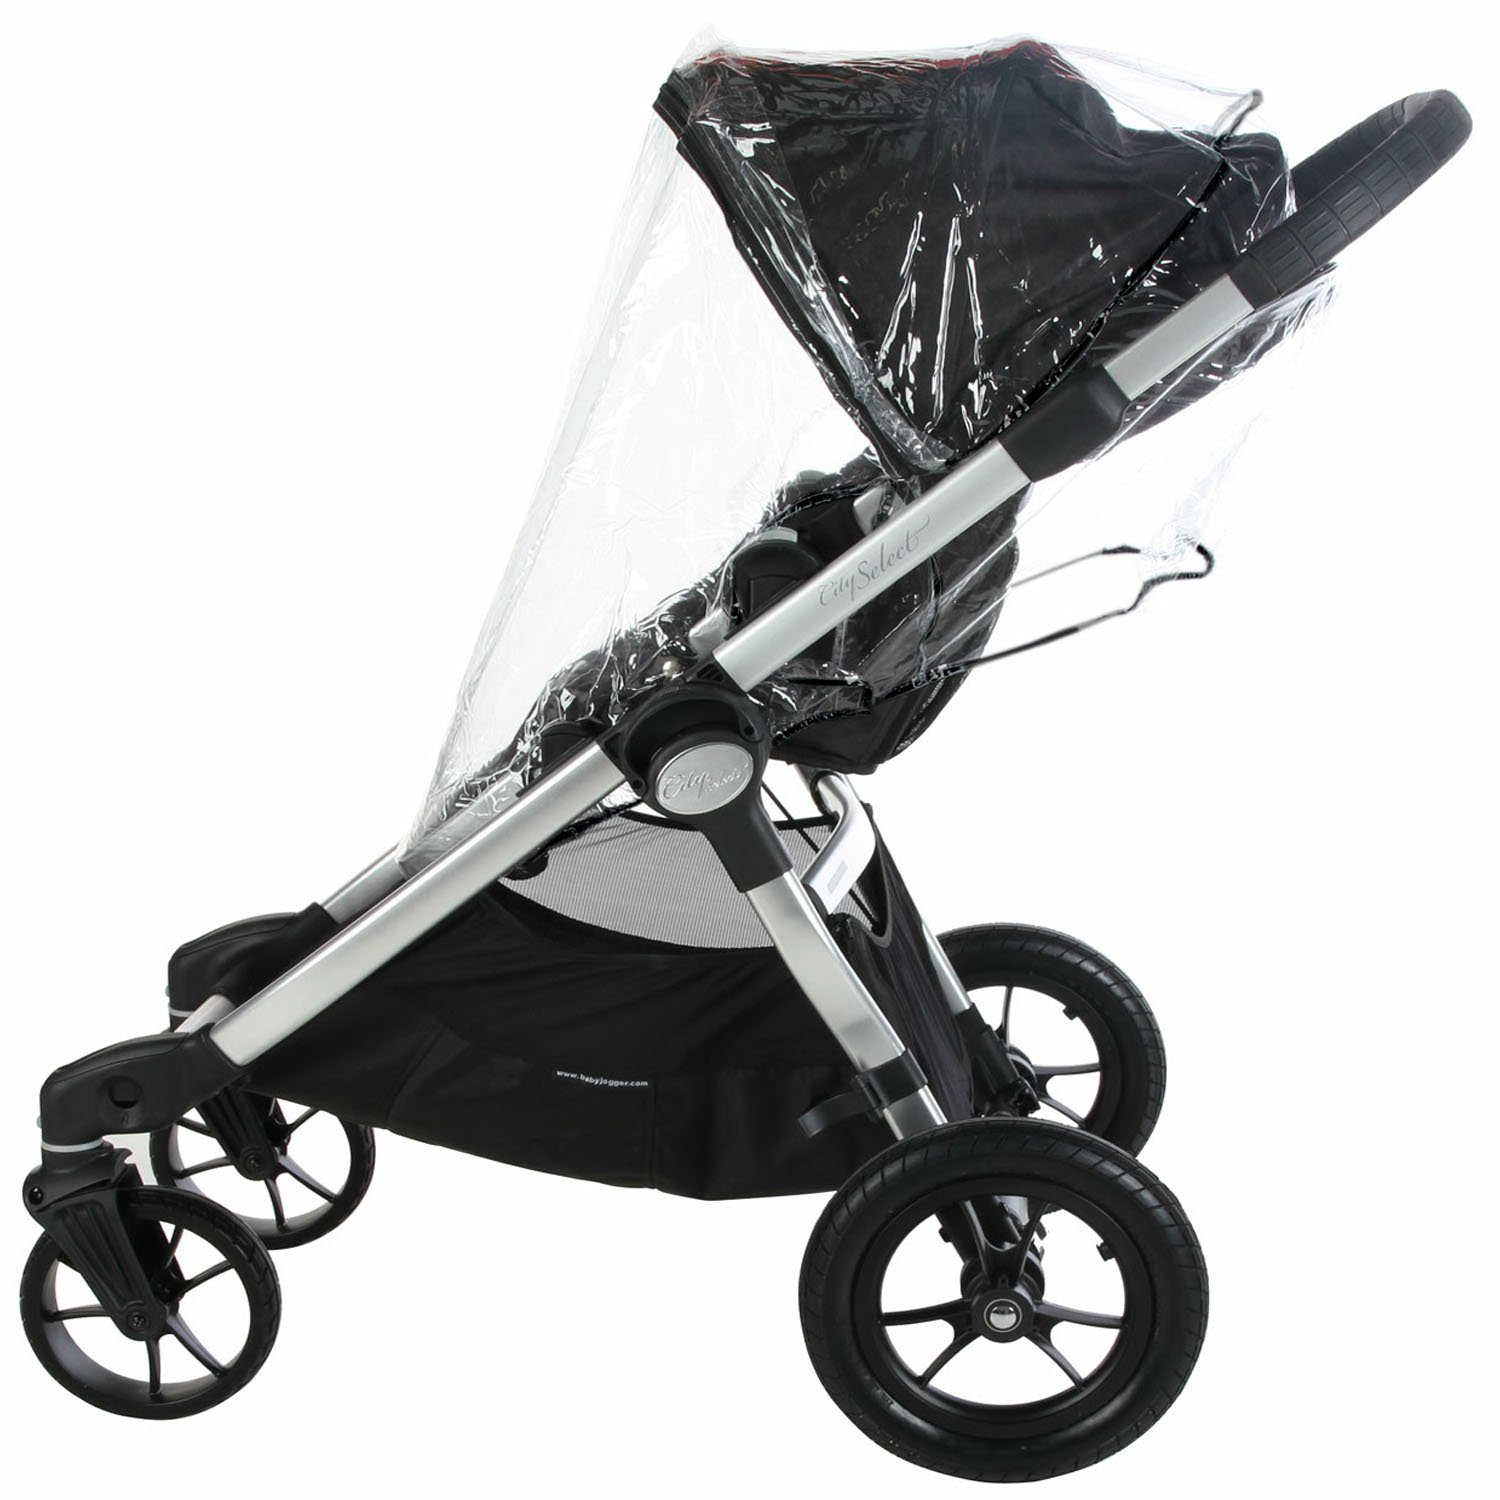 Baby Jogger CITY SELECT & VERSA Stroller & Carrycot (Single) Raincover Weather Shield zipped Rain Cover Baby Travel® City Select Type RC